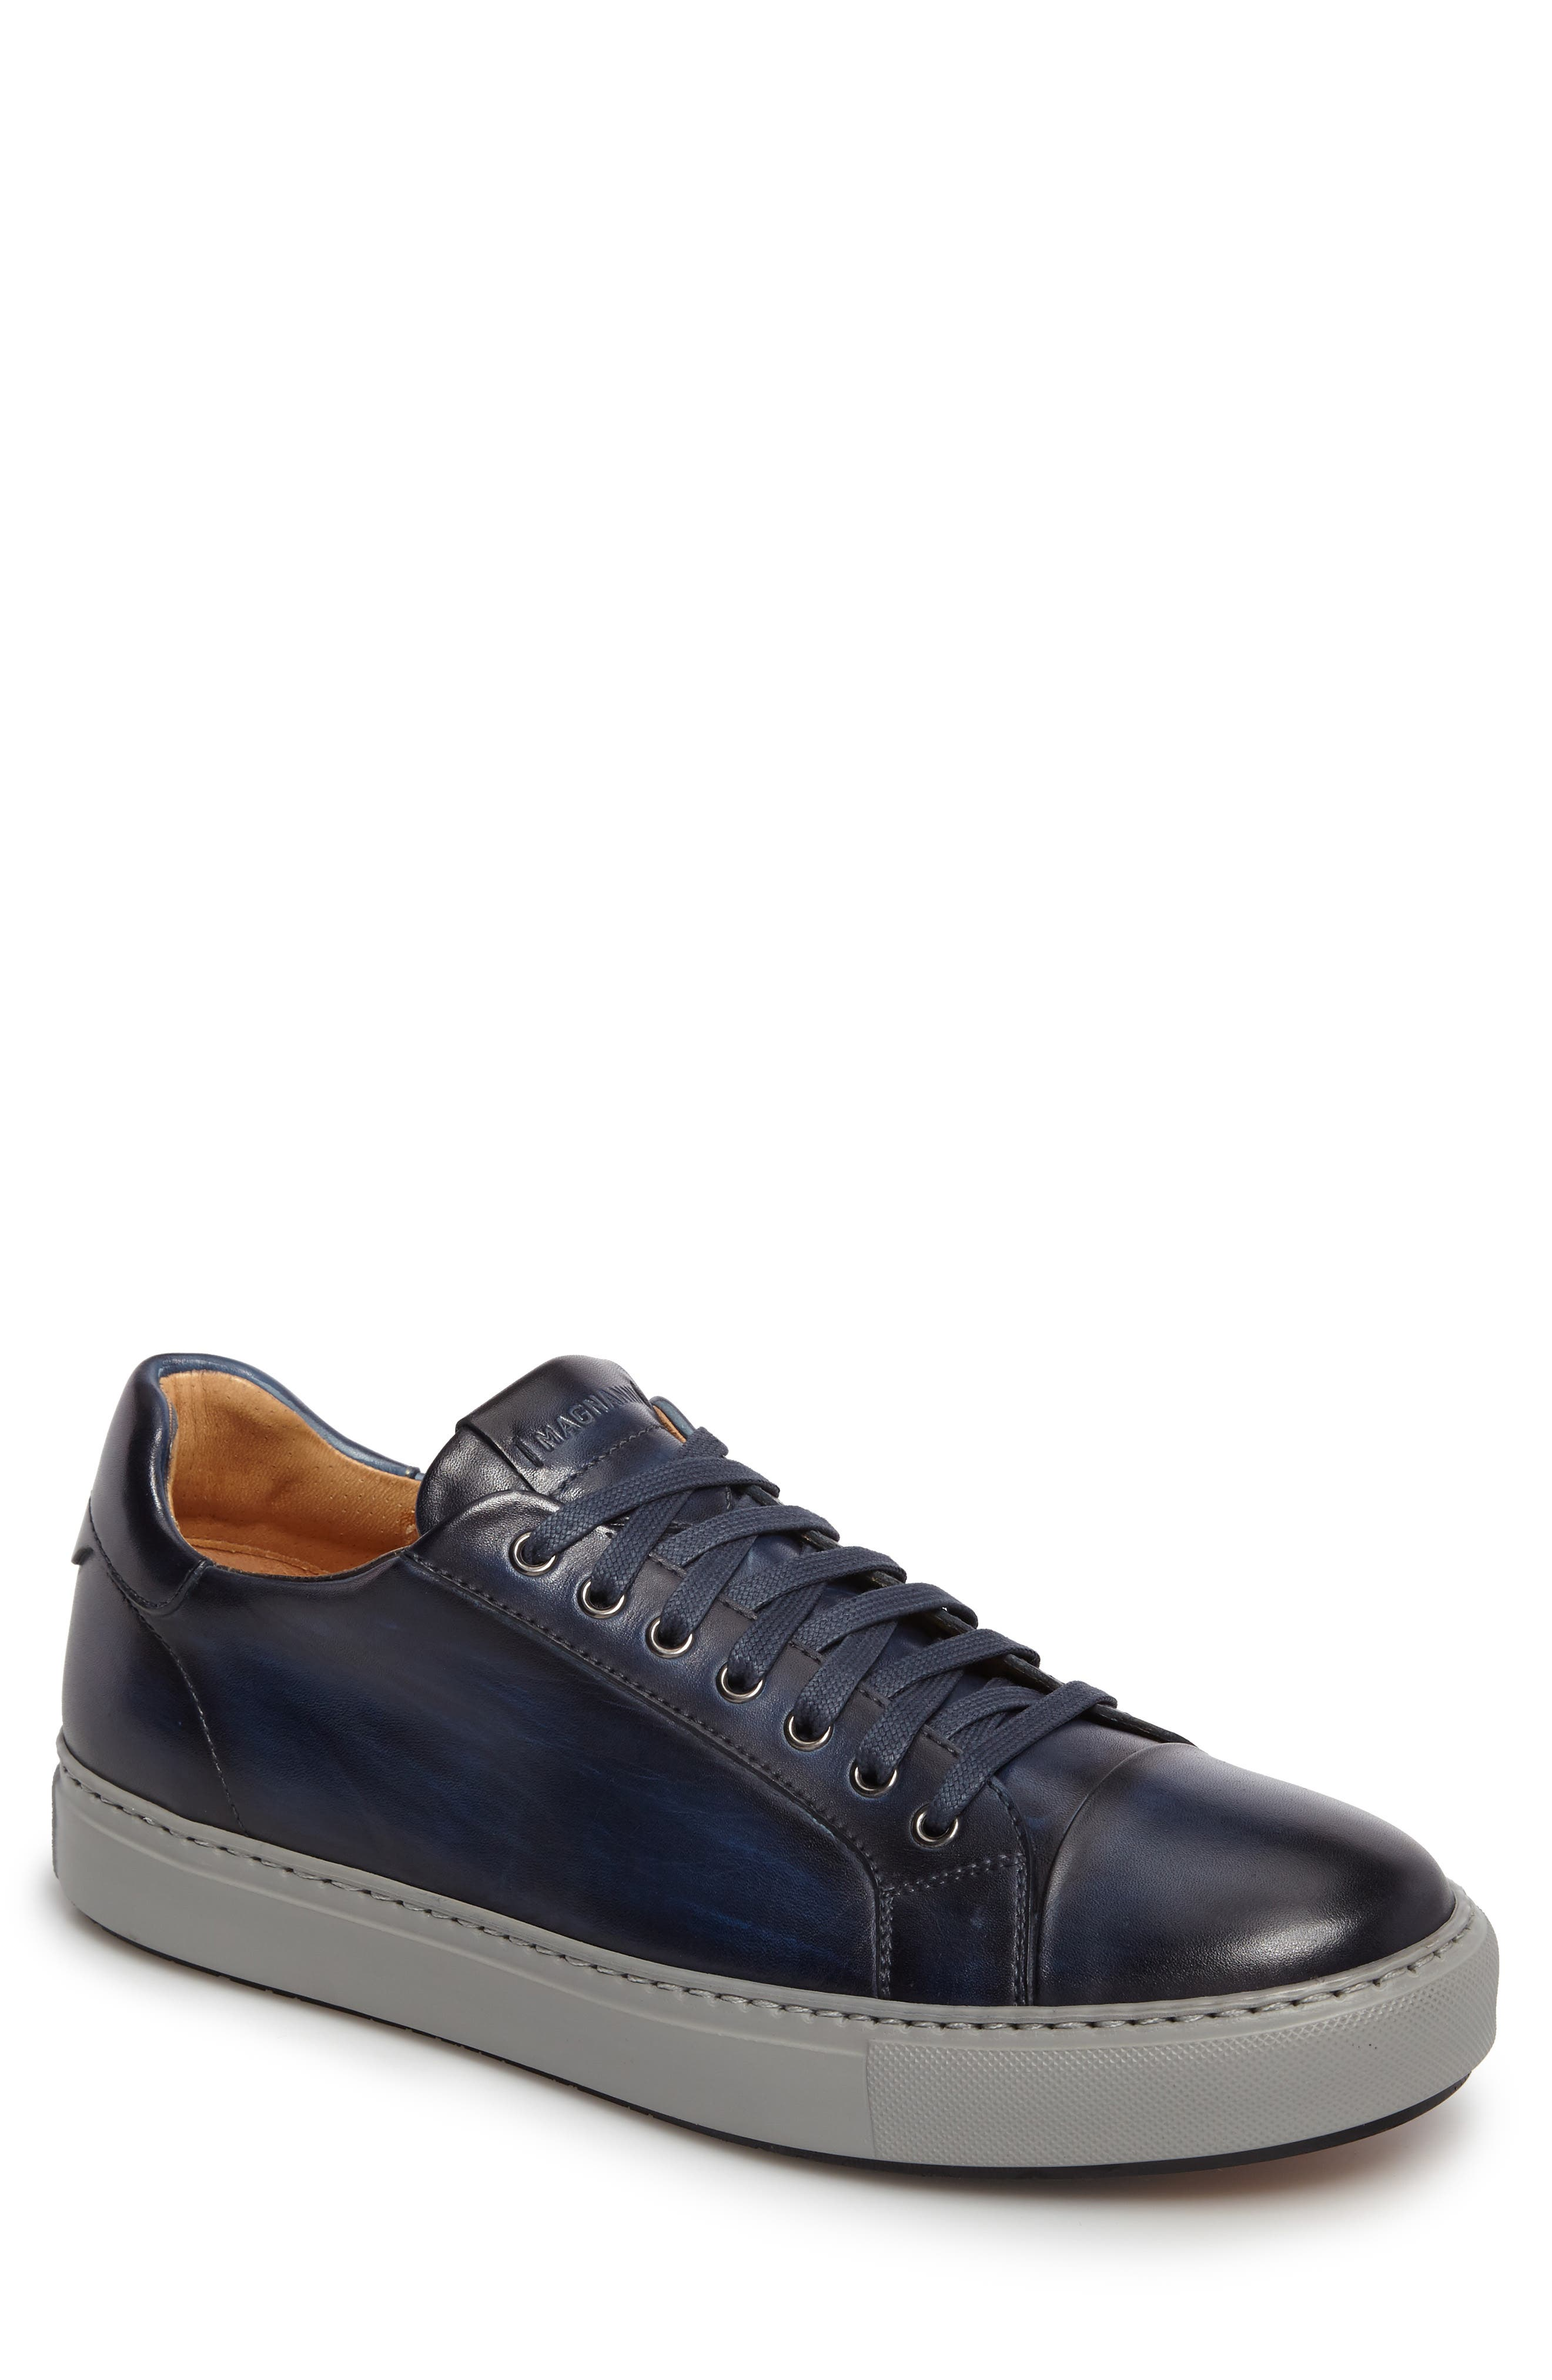 Kaden Lo Sneaker,                             Main thumbnail 1, color,                             Brushed Navy Leather